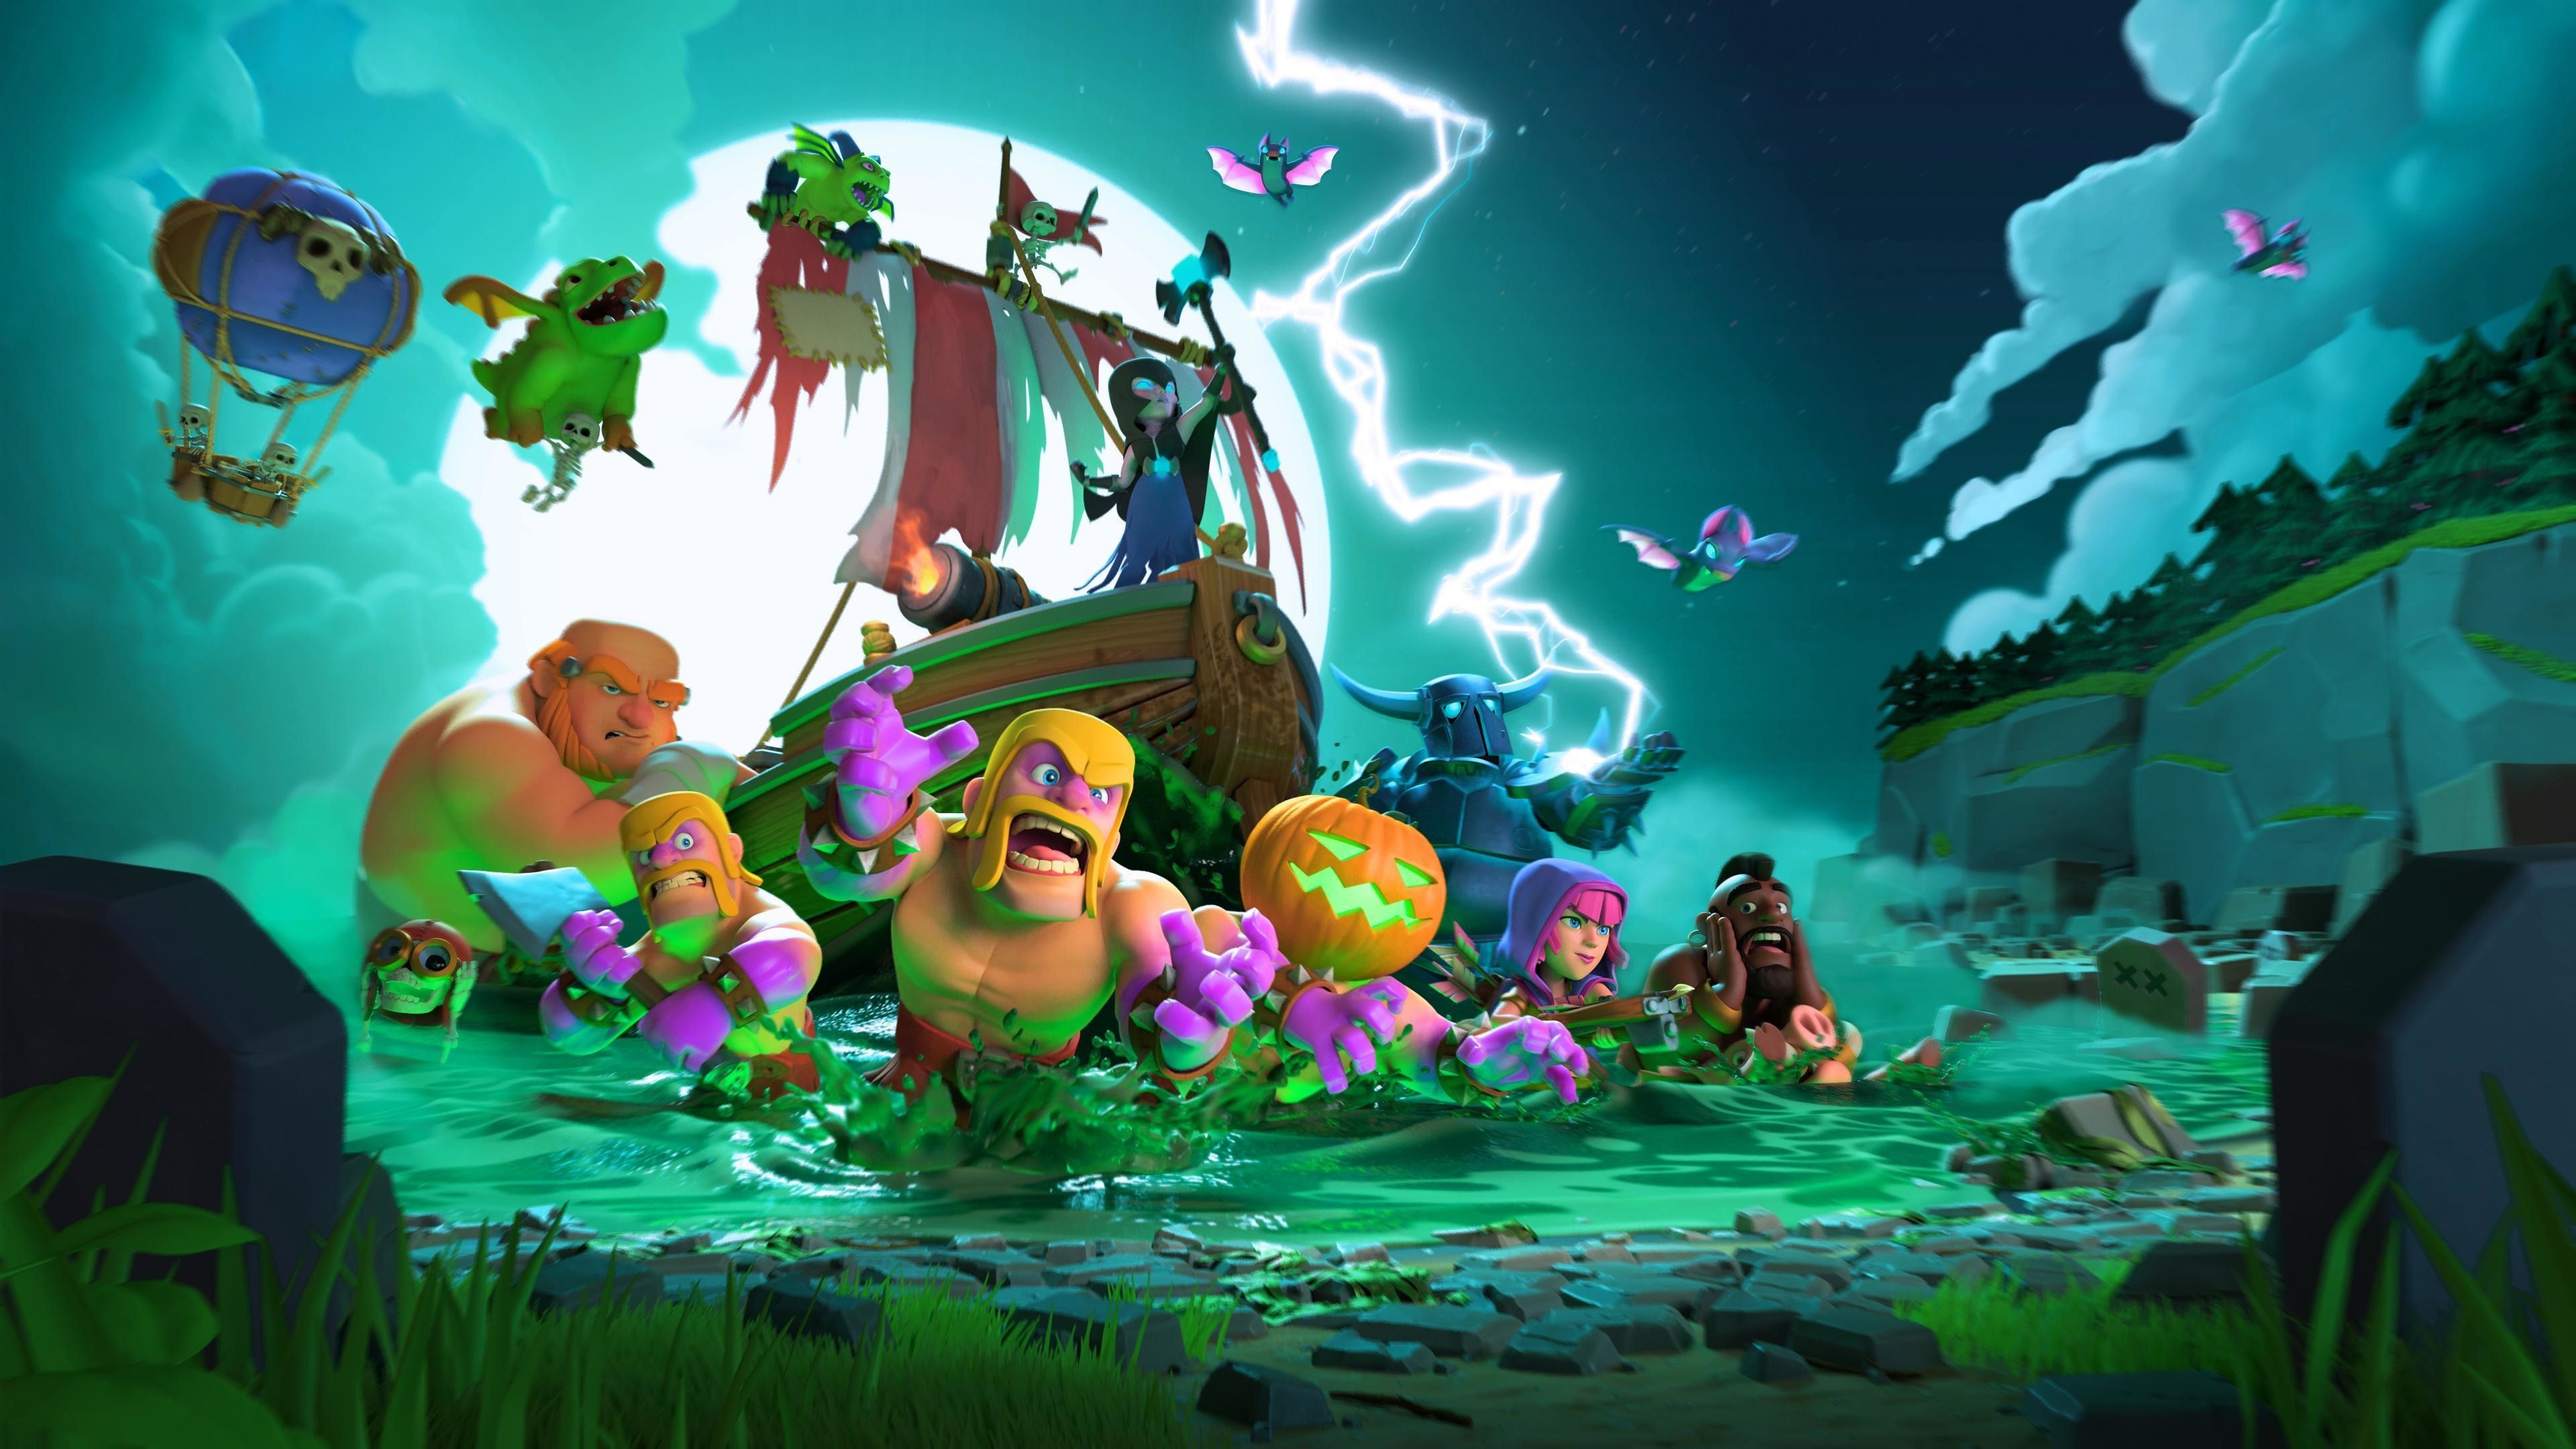 3840x2160 Download 3840x2160 wallpaper clash of clans, mobile game, halloween ...